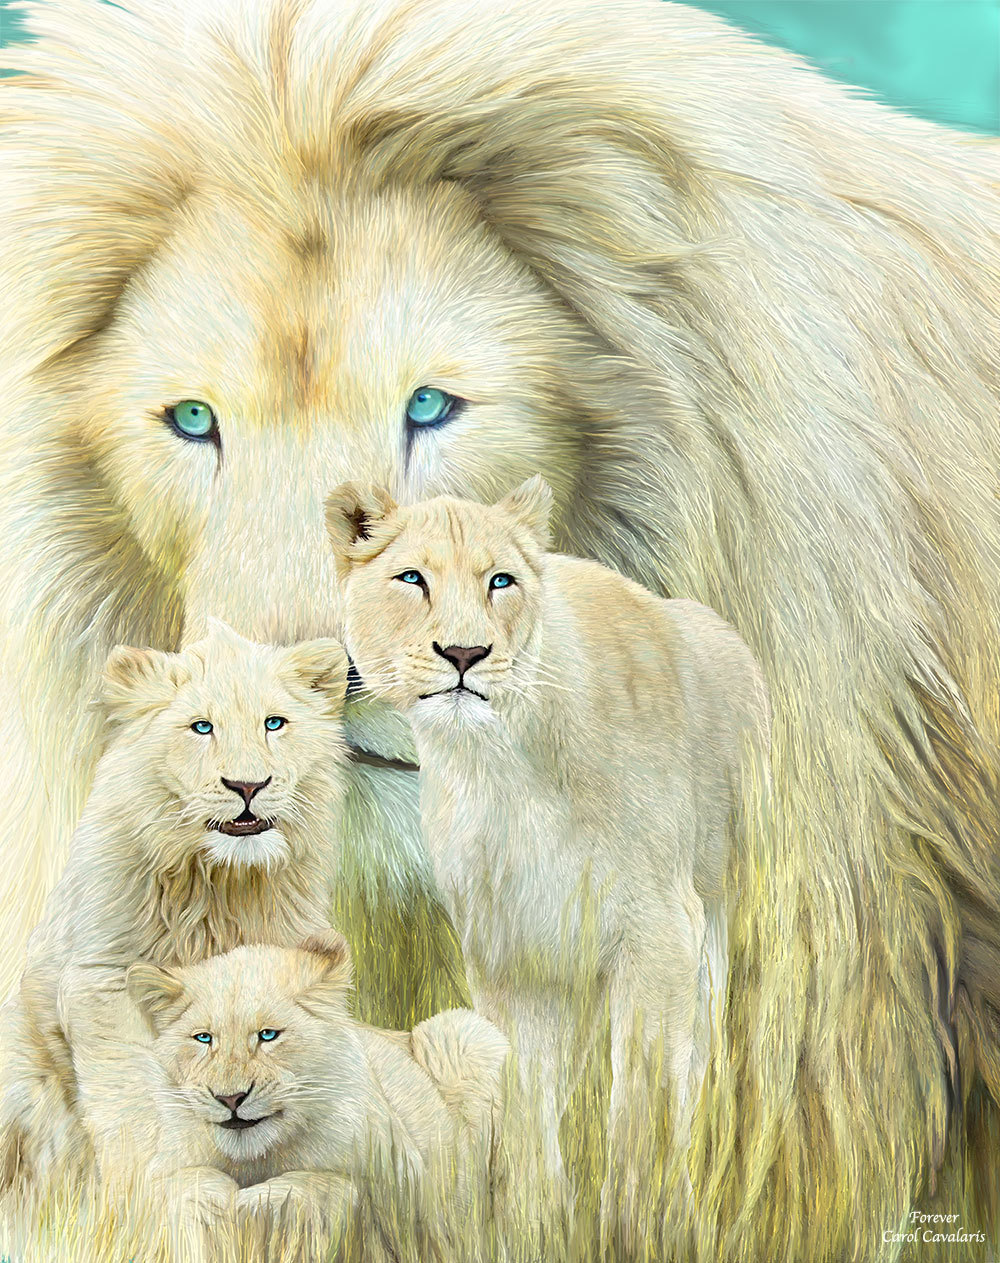 White Lion Family - Forever